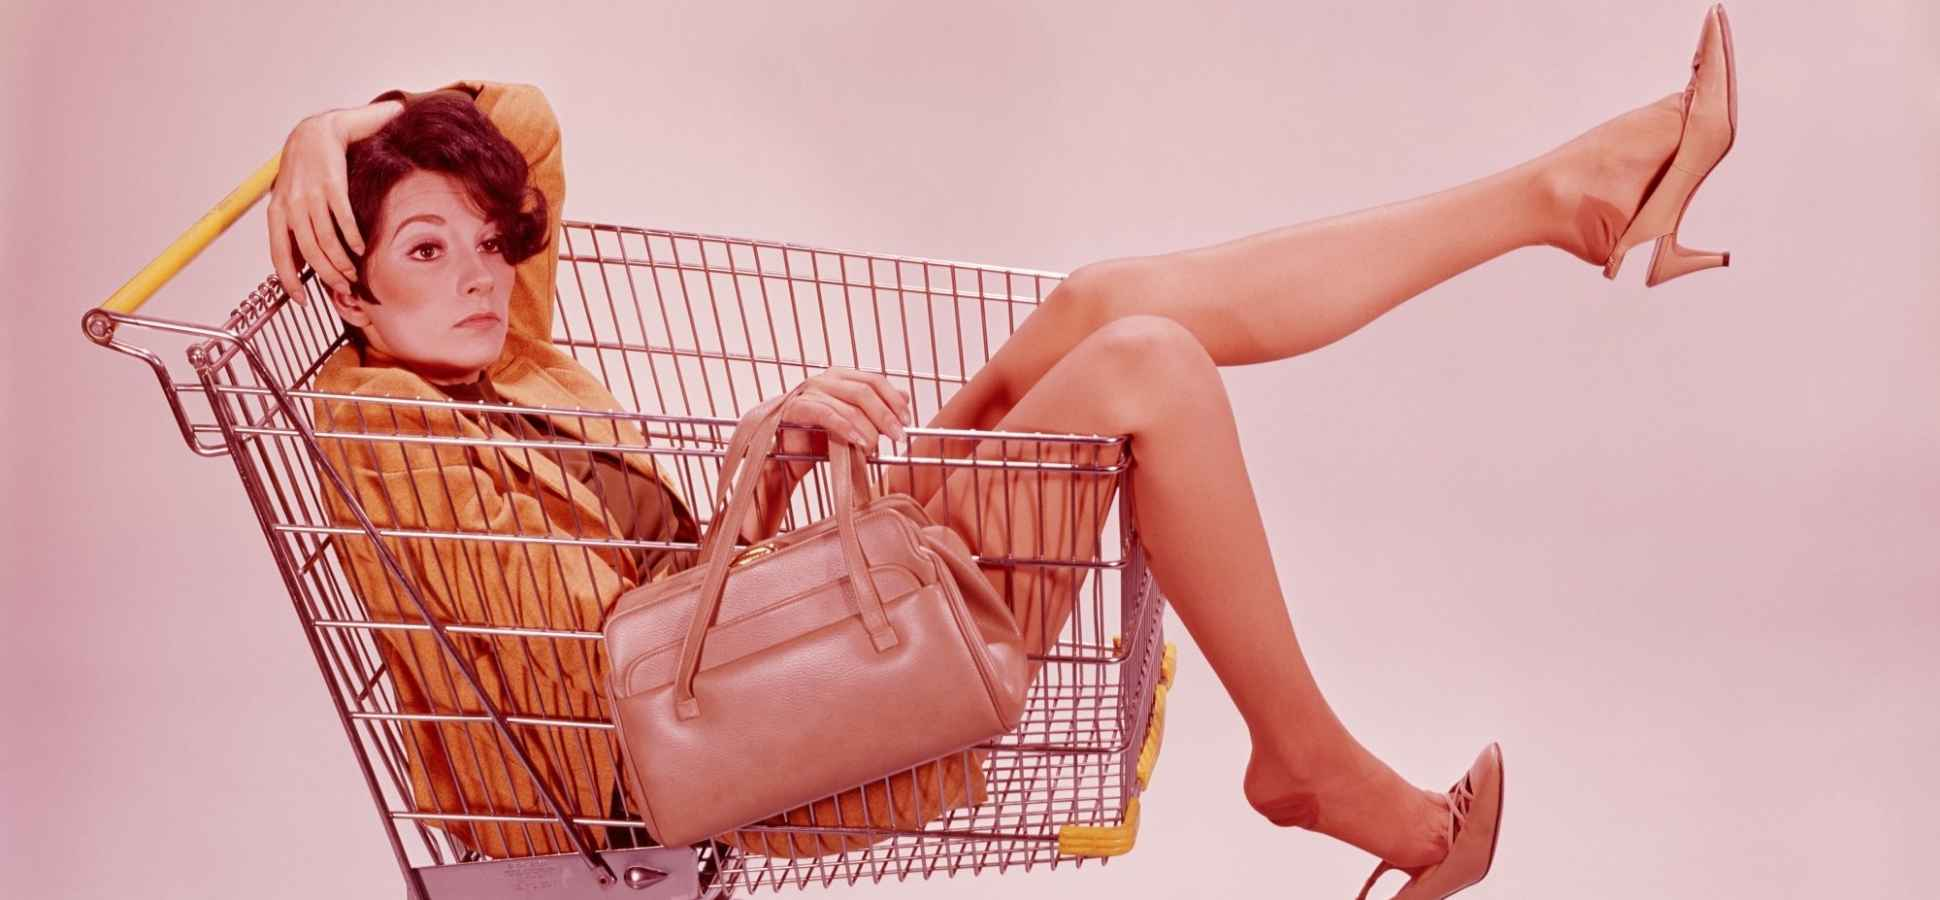 Can Retail Be Saved? Yes, and Here's How